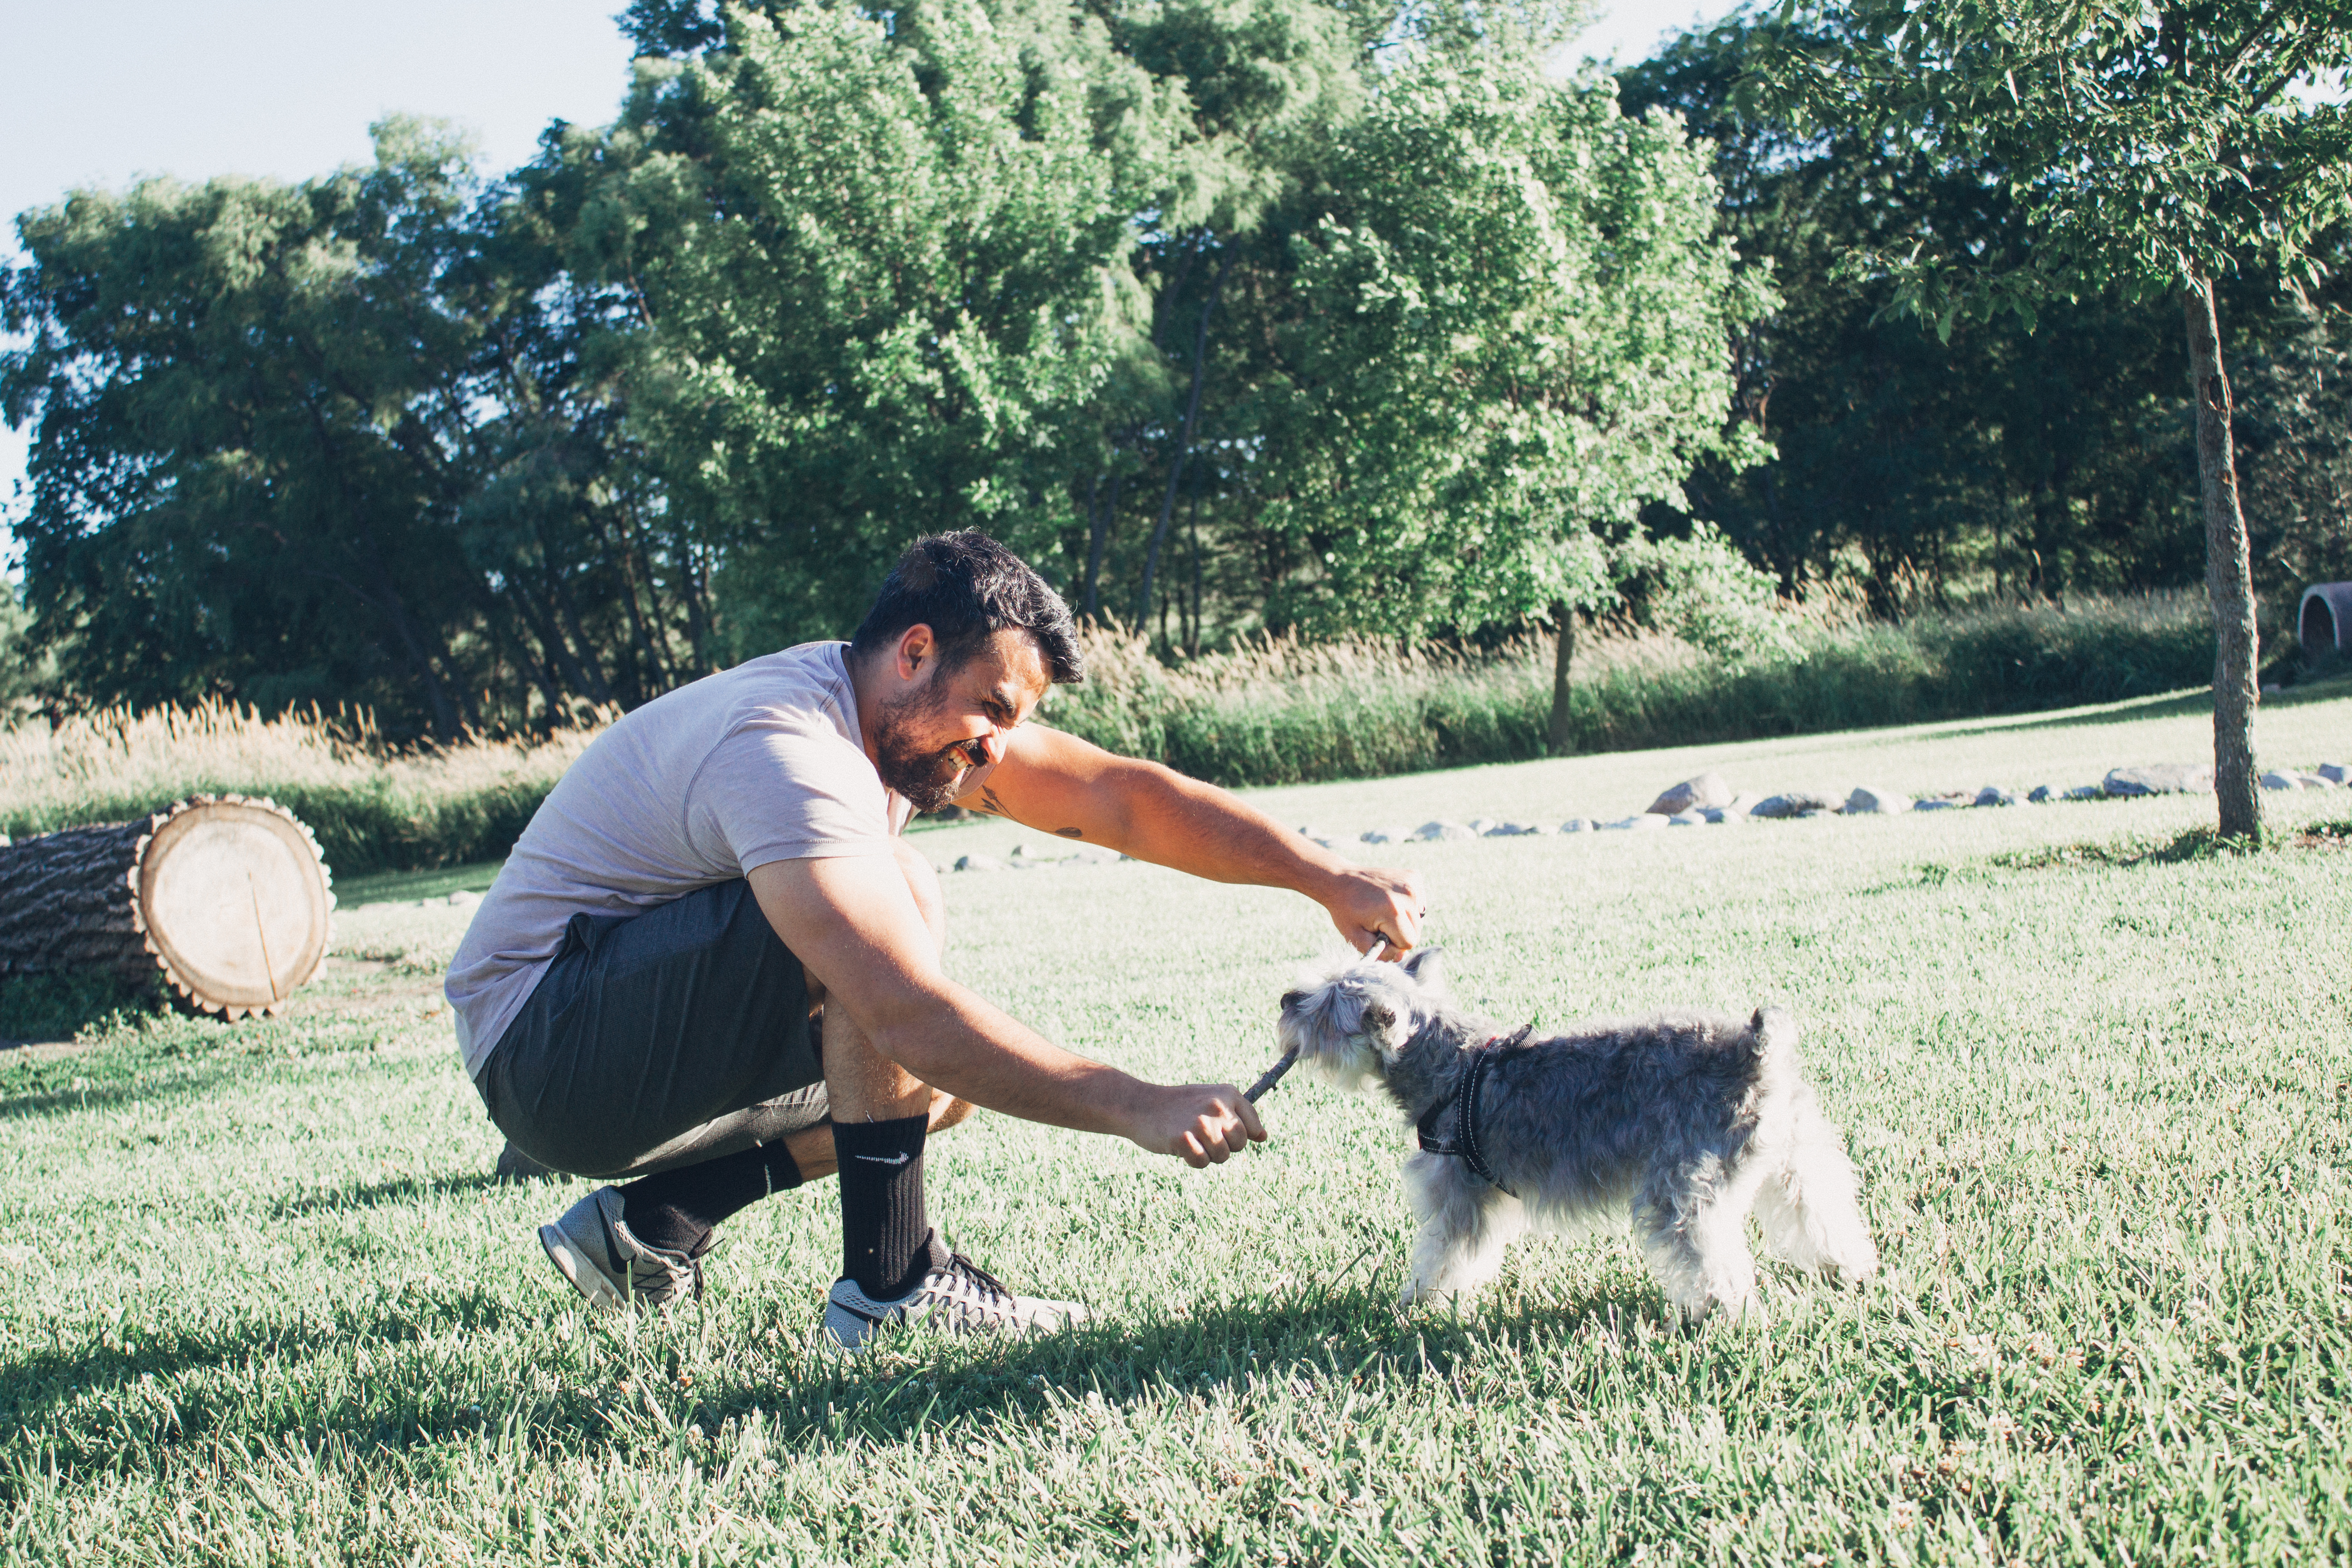 THREE TIPS ON ENJOYING SUMMER WITH YOUR POOCH